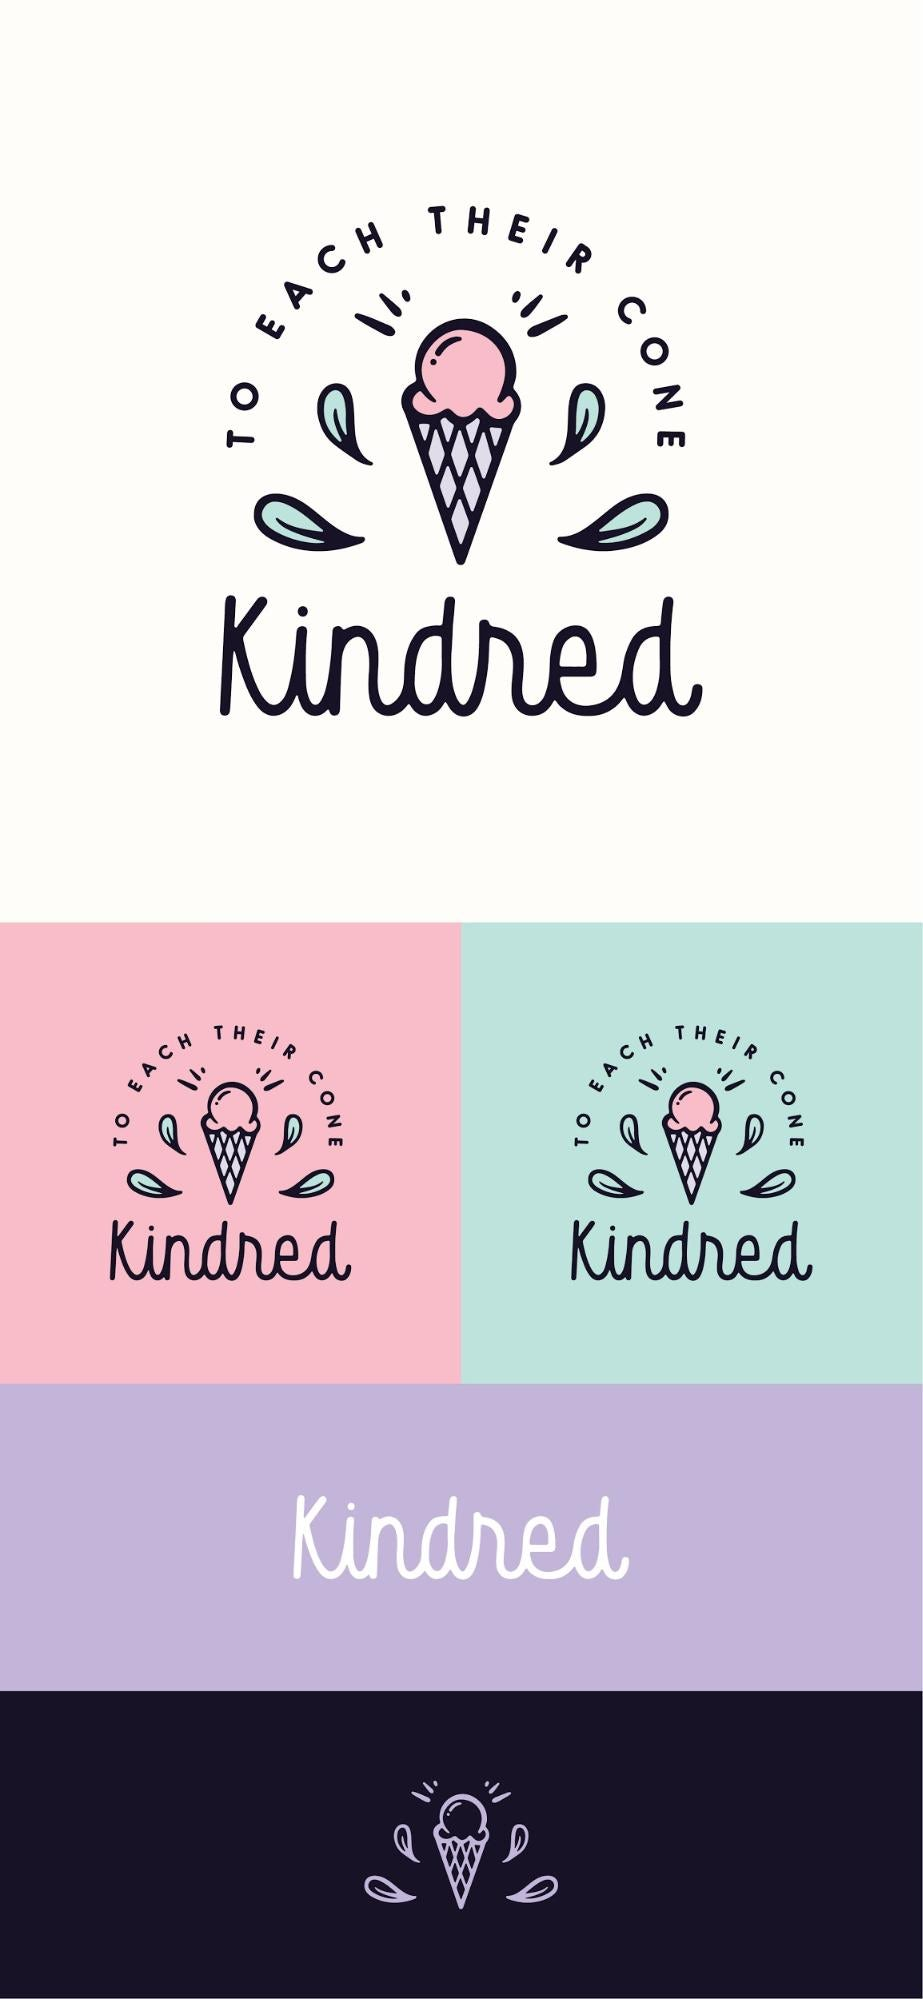 kindred logo presentation with different colors and versions